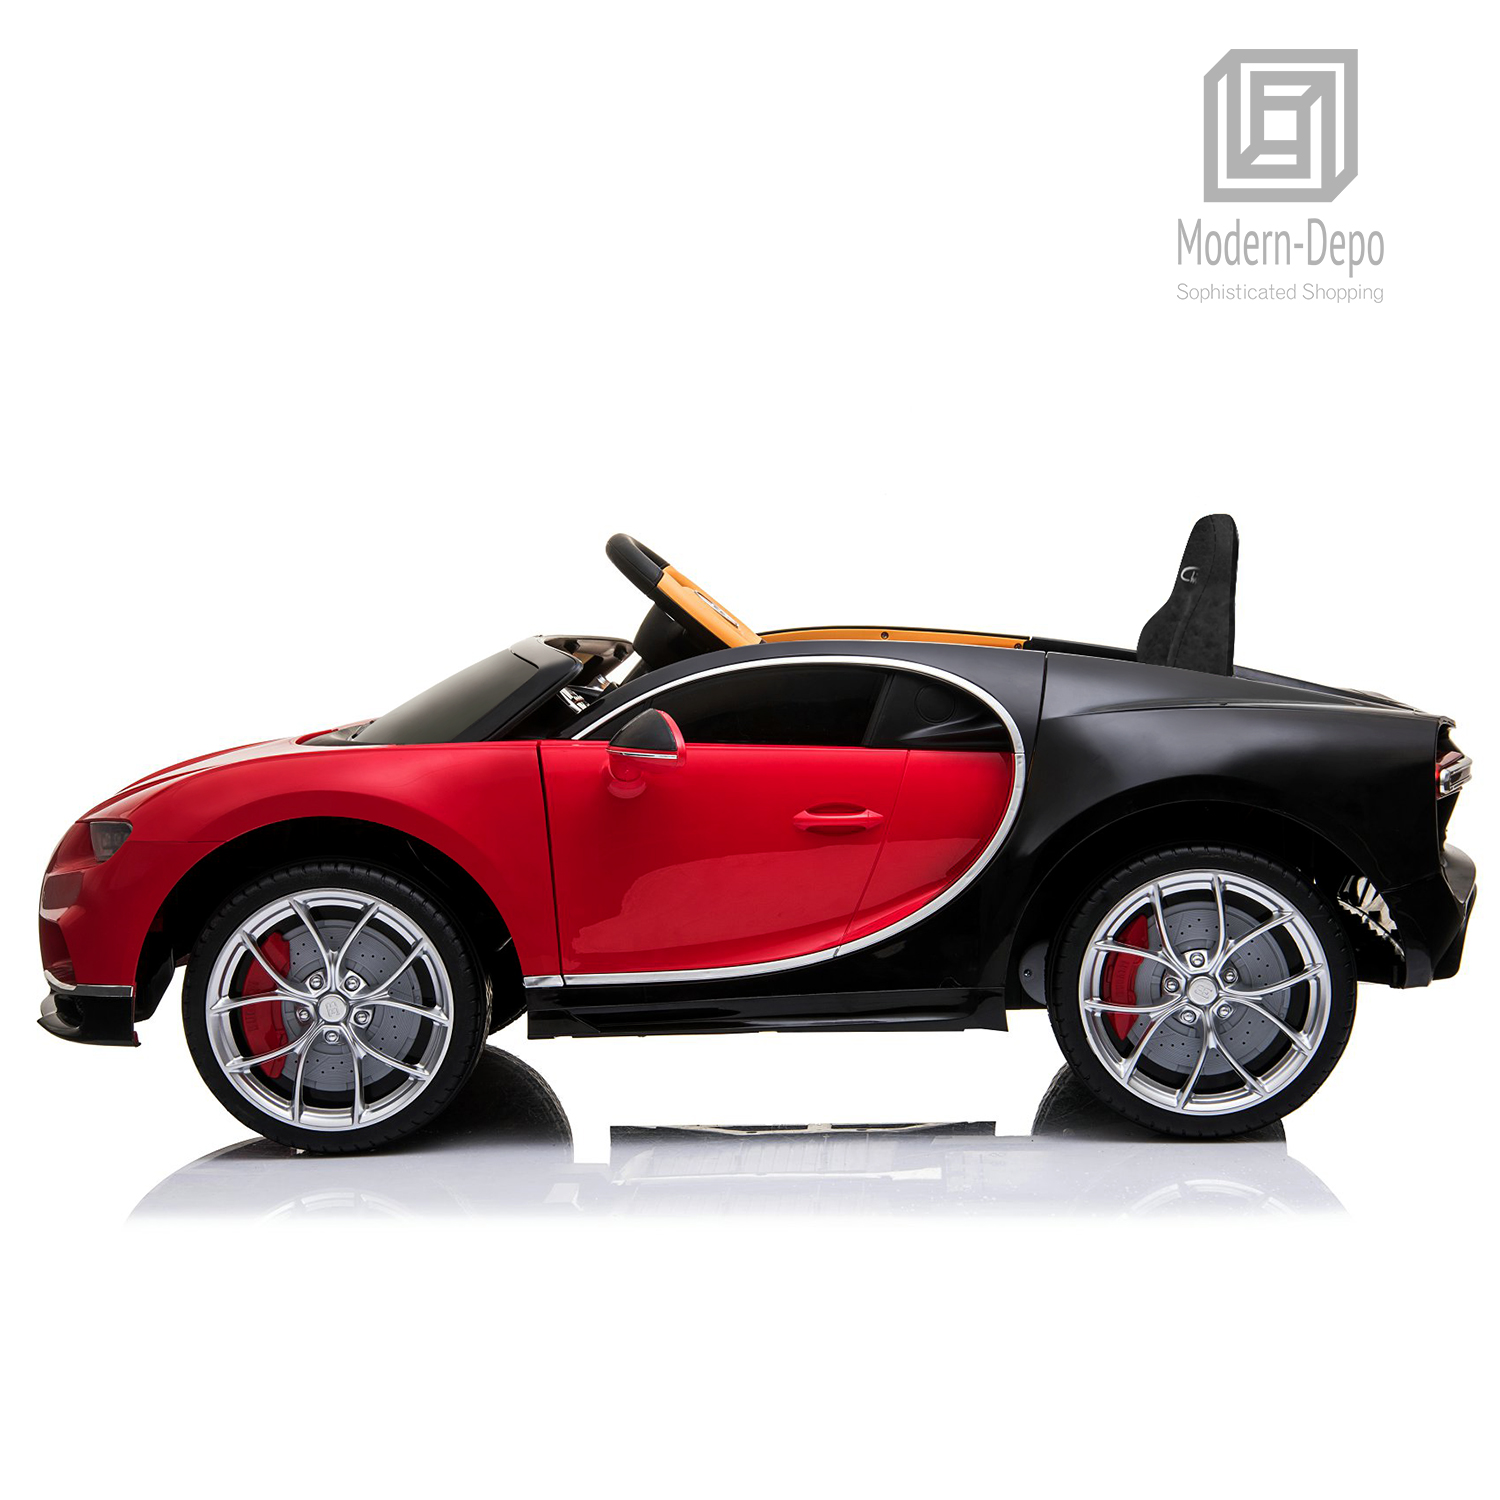 Bugatti-Chiron-12V-Kids-Ride-On-Car-with-Remote-Control-High-Speed-Motor miniature 31